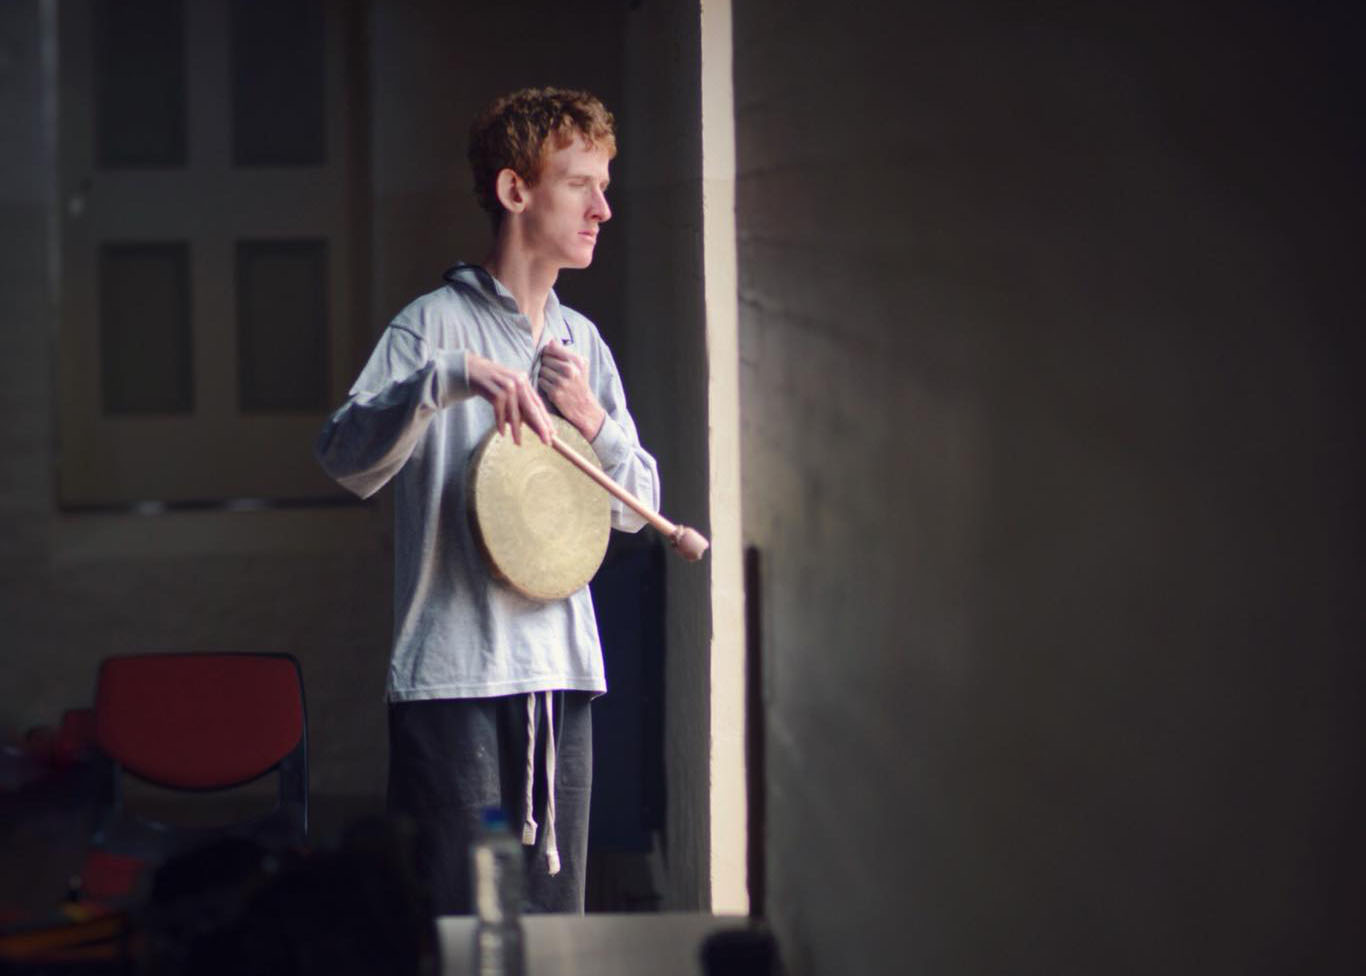 Colour photograph of Eurobodalla School of Possibilities, Beat Garden participant standing by a door way looking out. He is playing a drum. Photographer: Tim Burke.